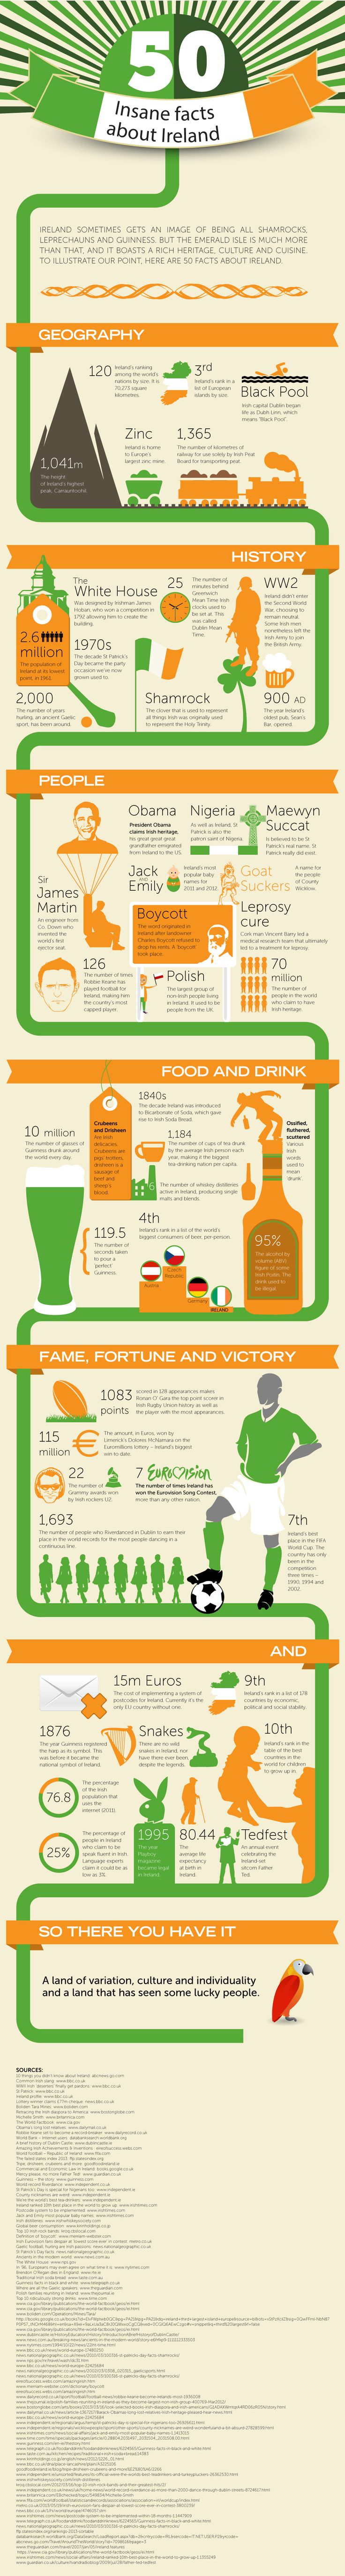 50 Insane Facts about Ireland #Infographic #Facts #Travel                                                                                                                                                                                 More